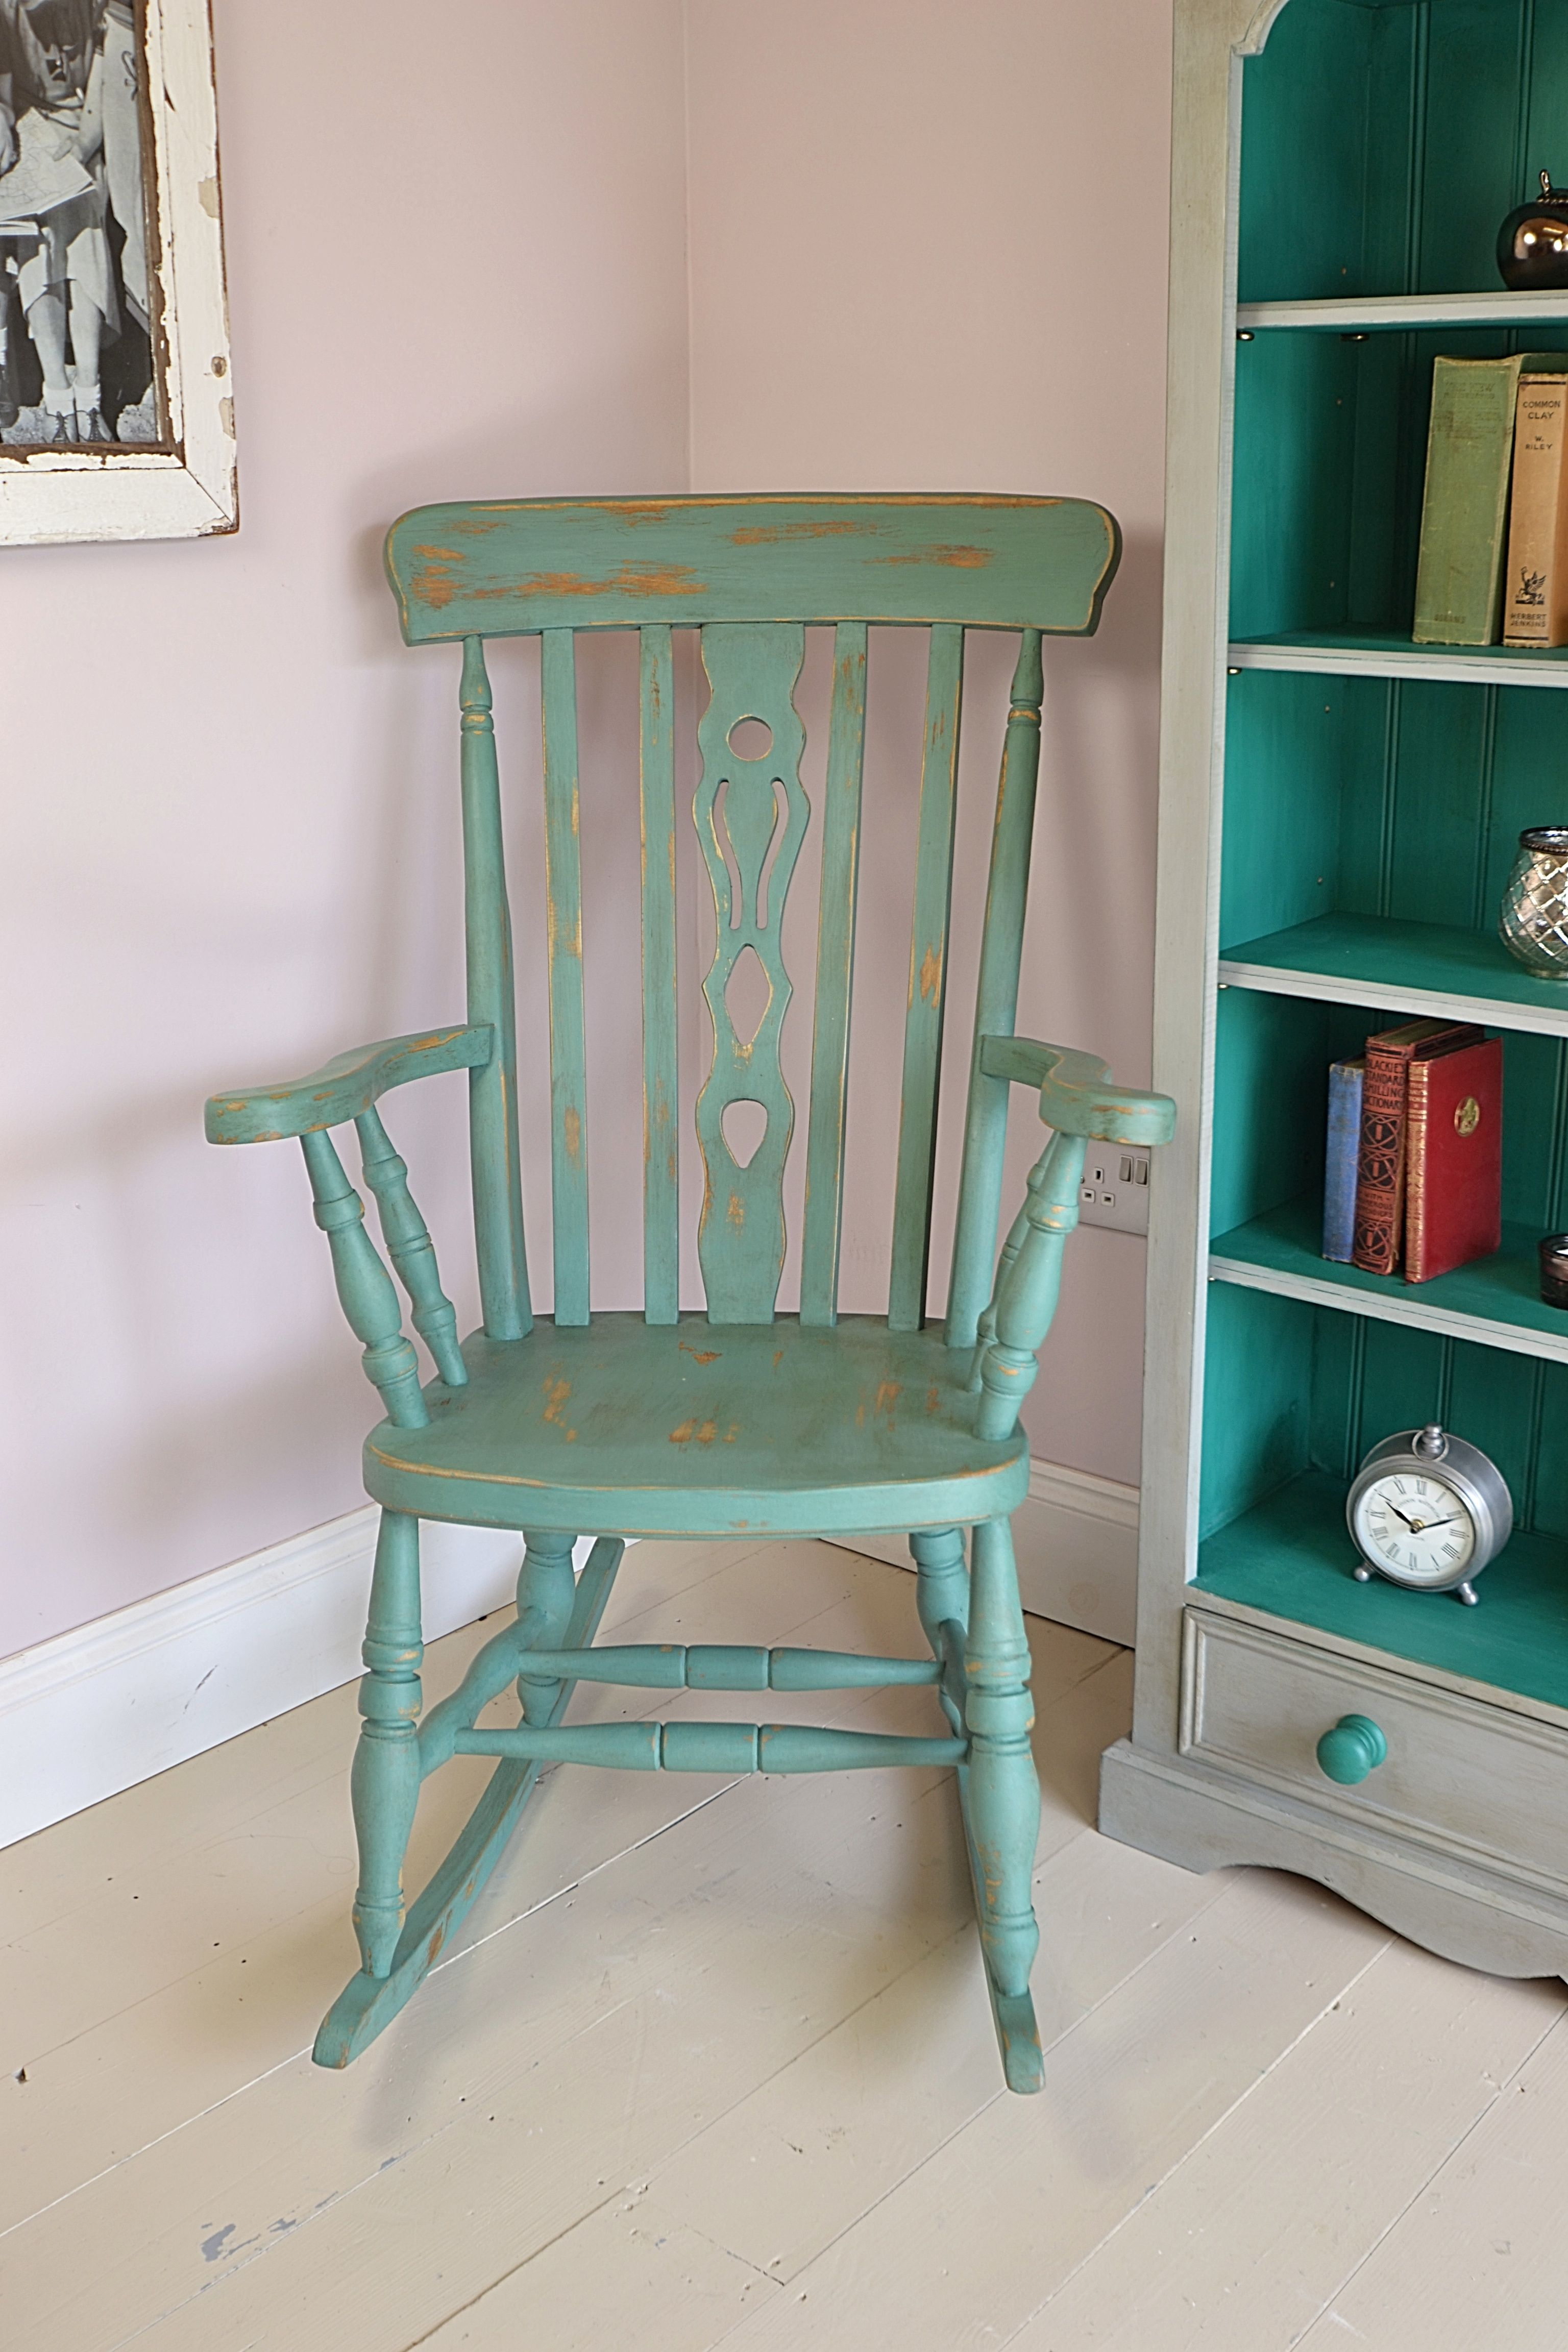 This Antique Pine Rocking Chair Has Been Lightly Distressed And Aged And  Painted In A Mix Of Annie Sloan Antibes Green U0026 Greek Blue, Creating A Rich  Teal ...